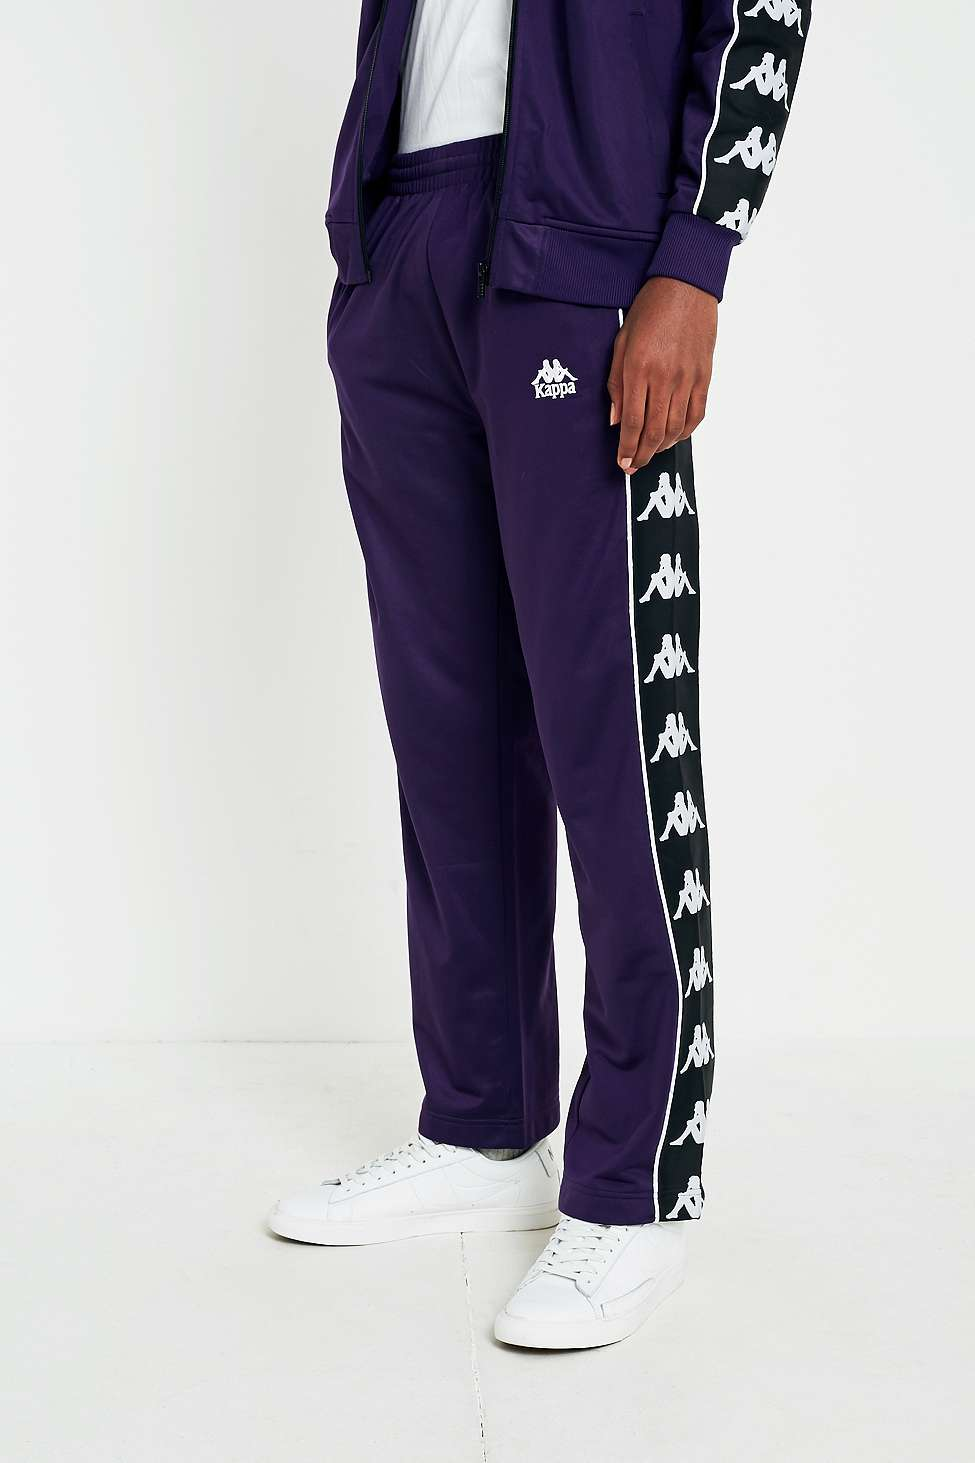 8502d9e5 Banda Astoria Purple Track Pants by Kappa — Thread